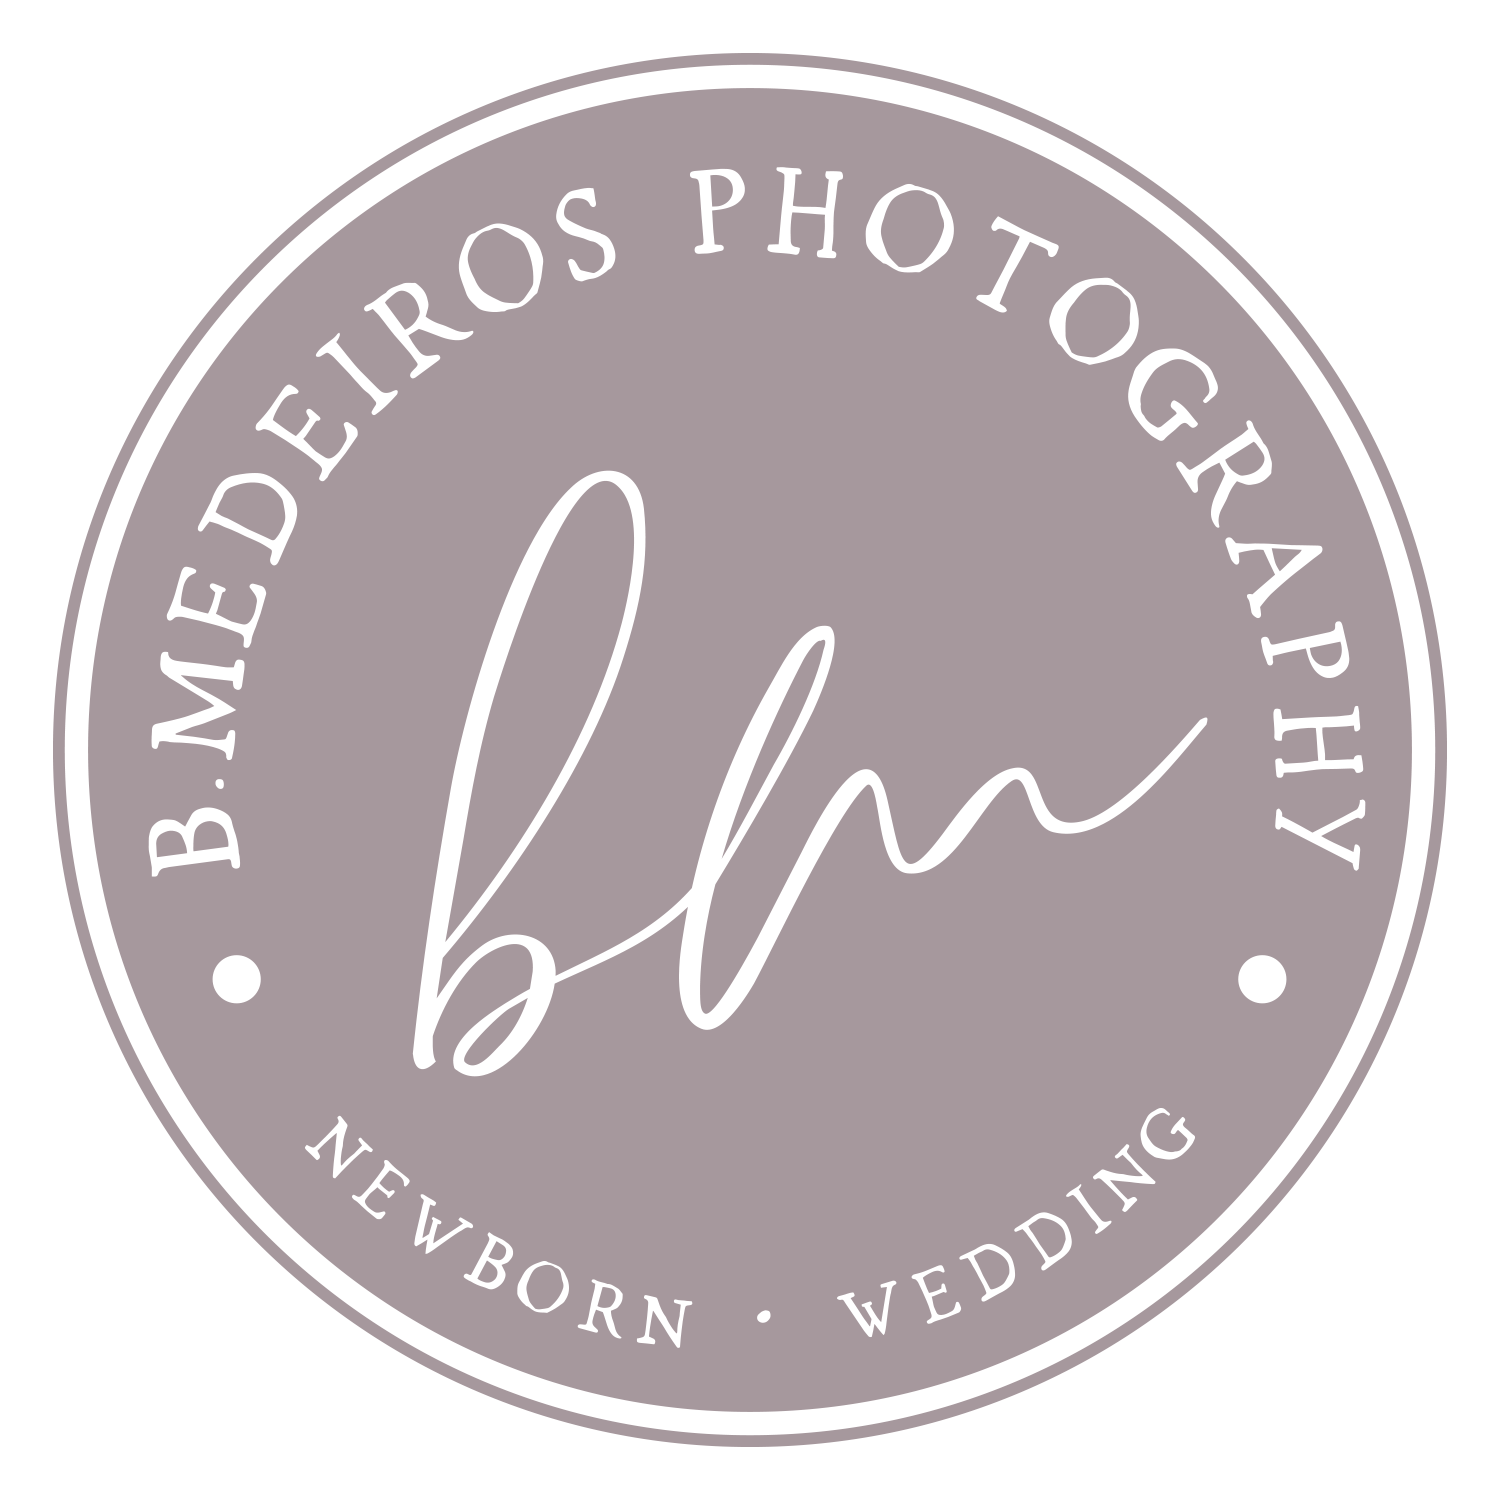 B.Medeiros Photography